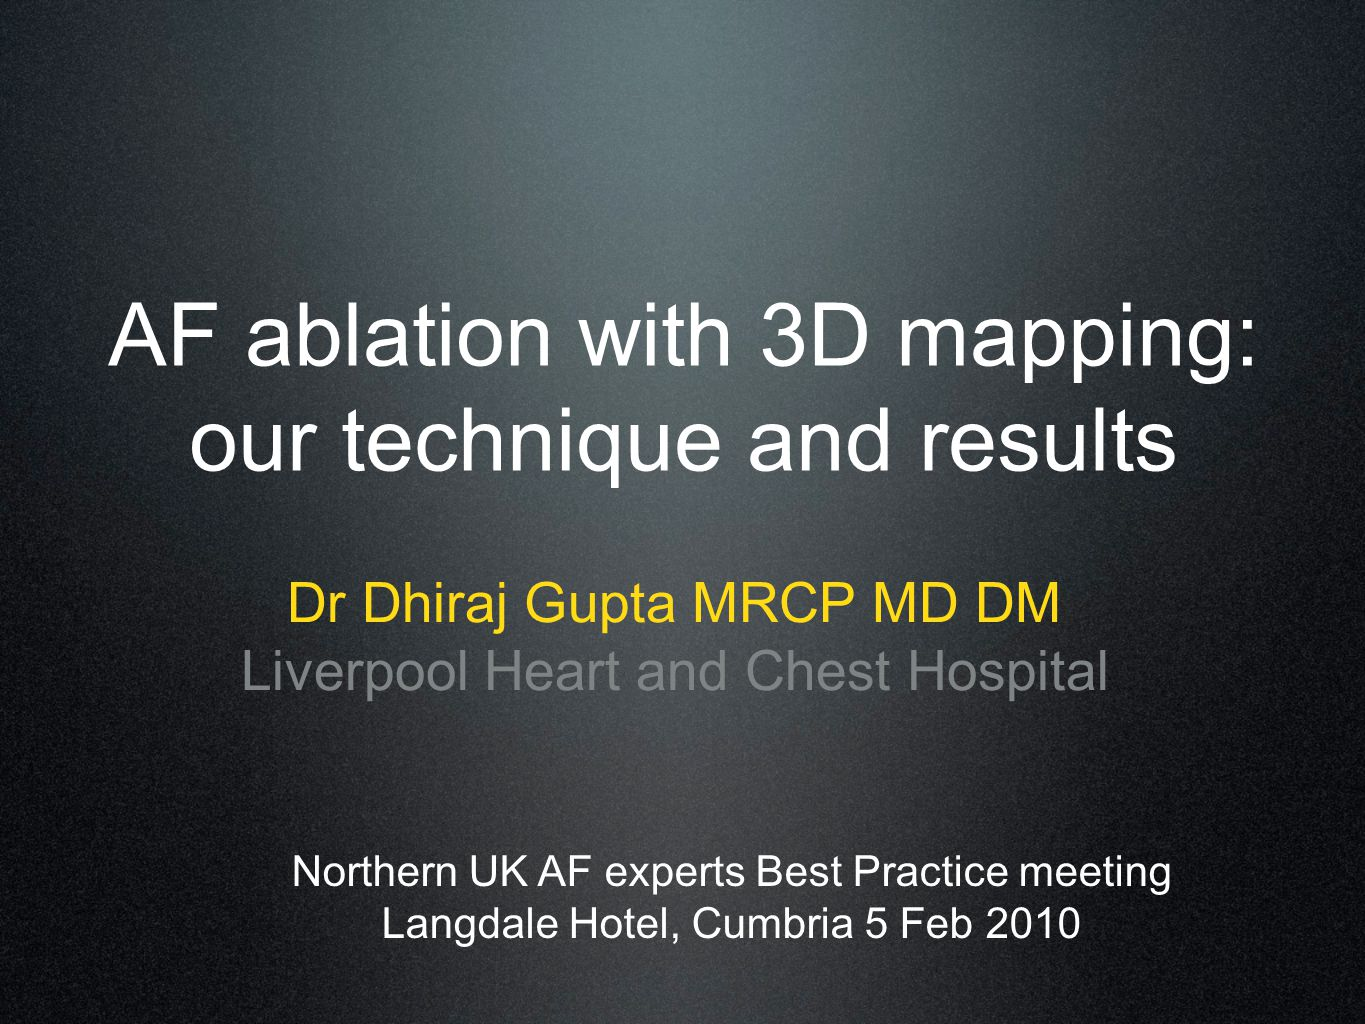 AF ablation with 3D mapping: our technique and results